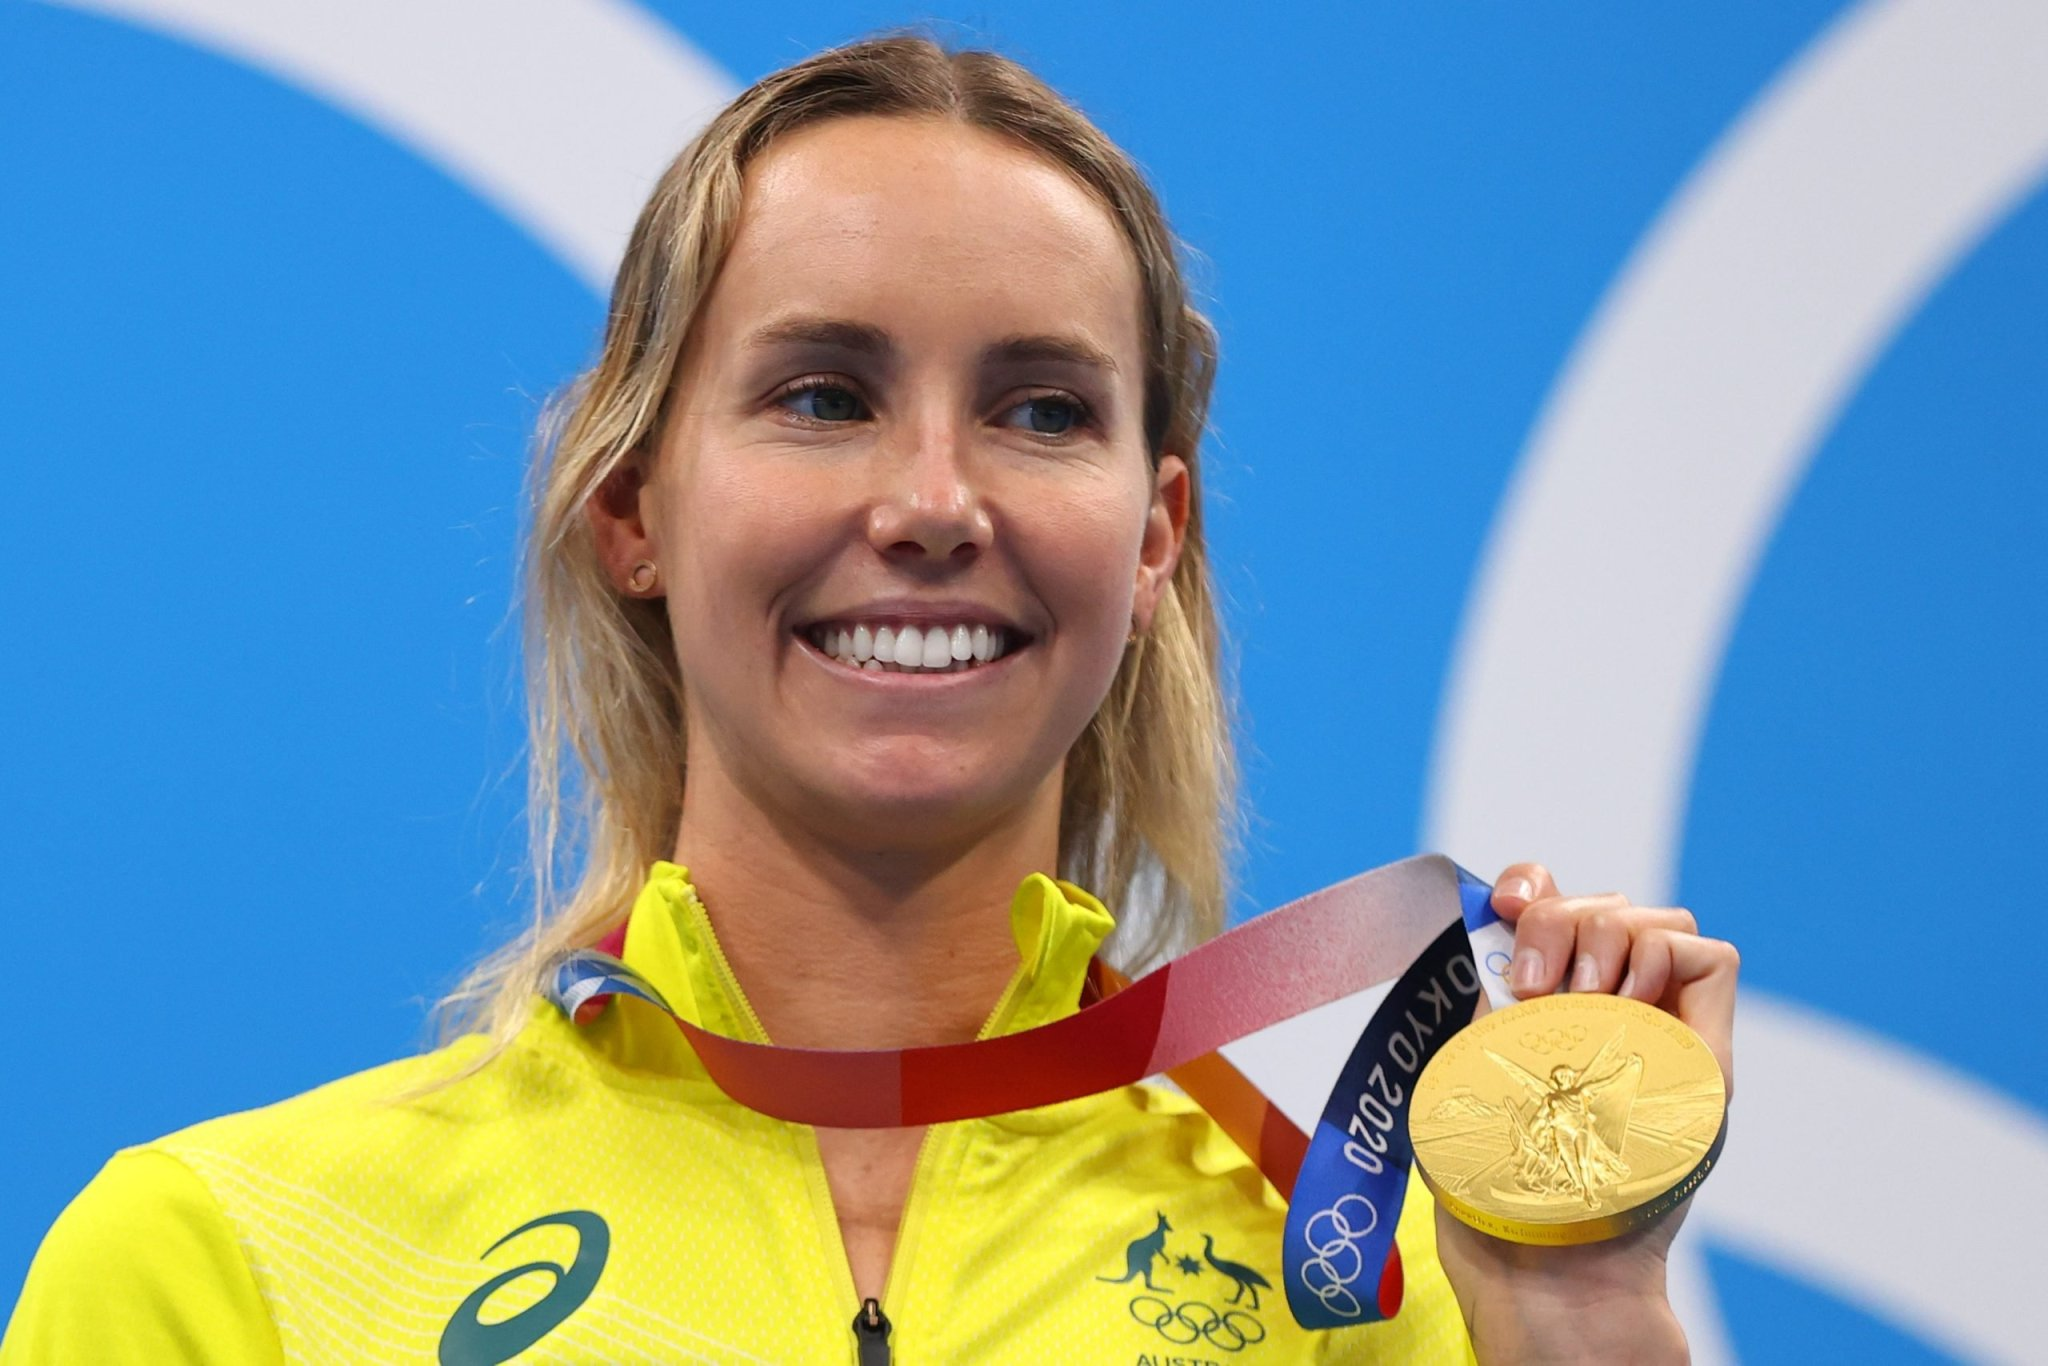 Olympics-Swimming-McKeon over the moon after winning first individual gold